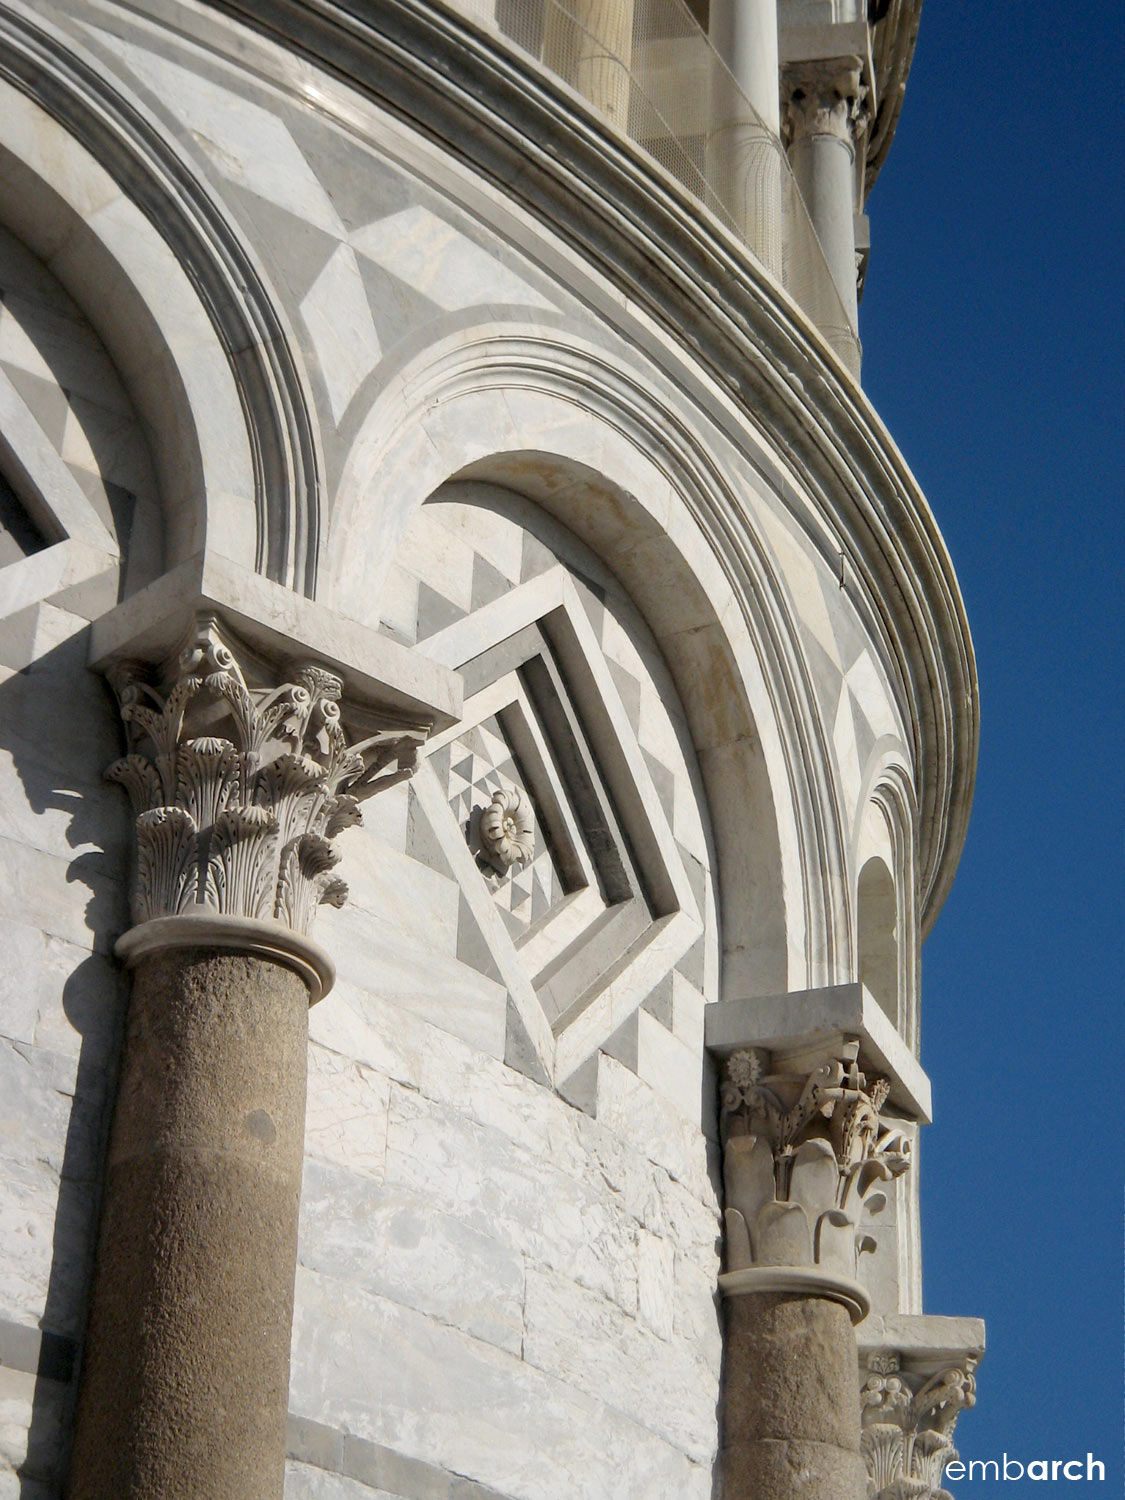 Piazza del Duomo, Pisa Italy - bell tower (the Leaning Tower of Pisa) exterior detail